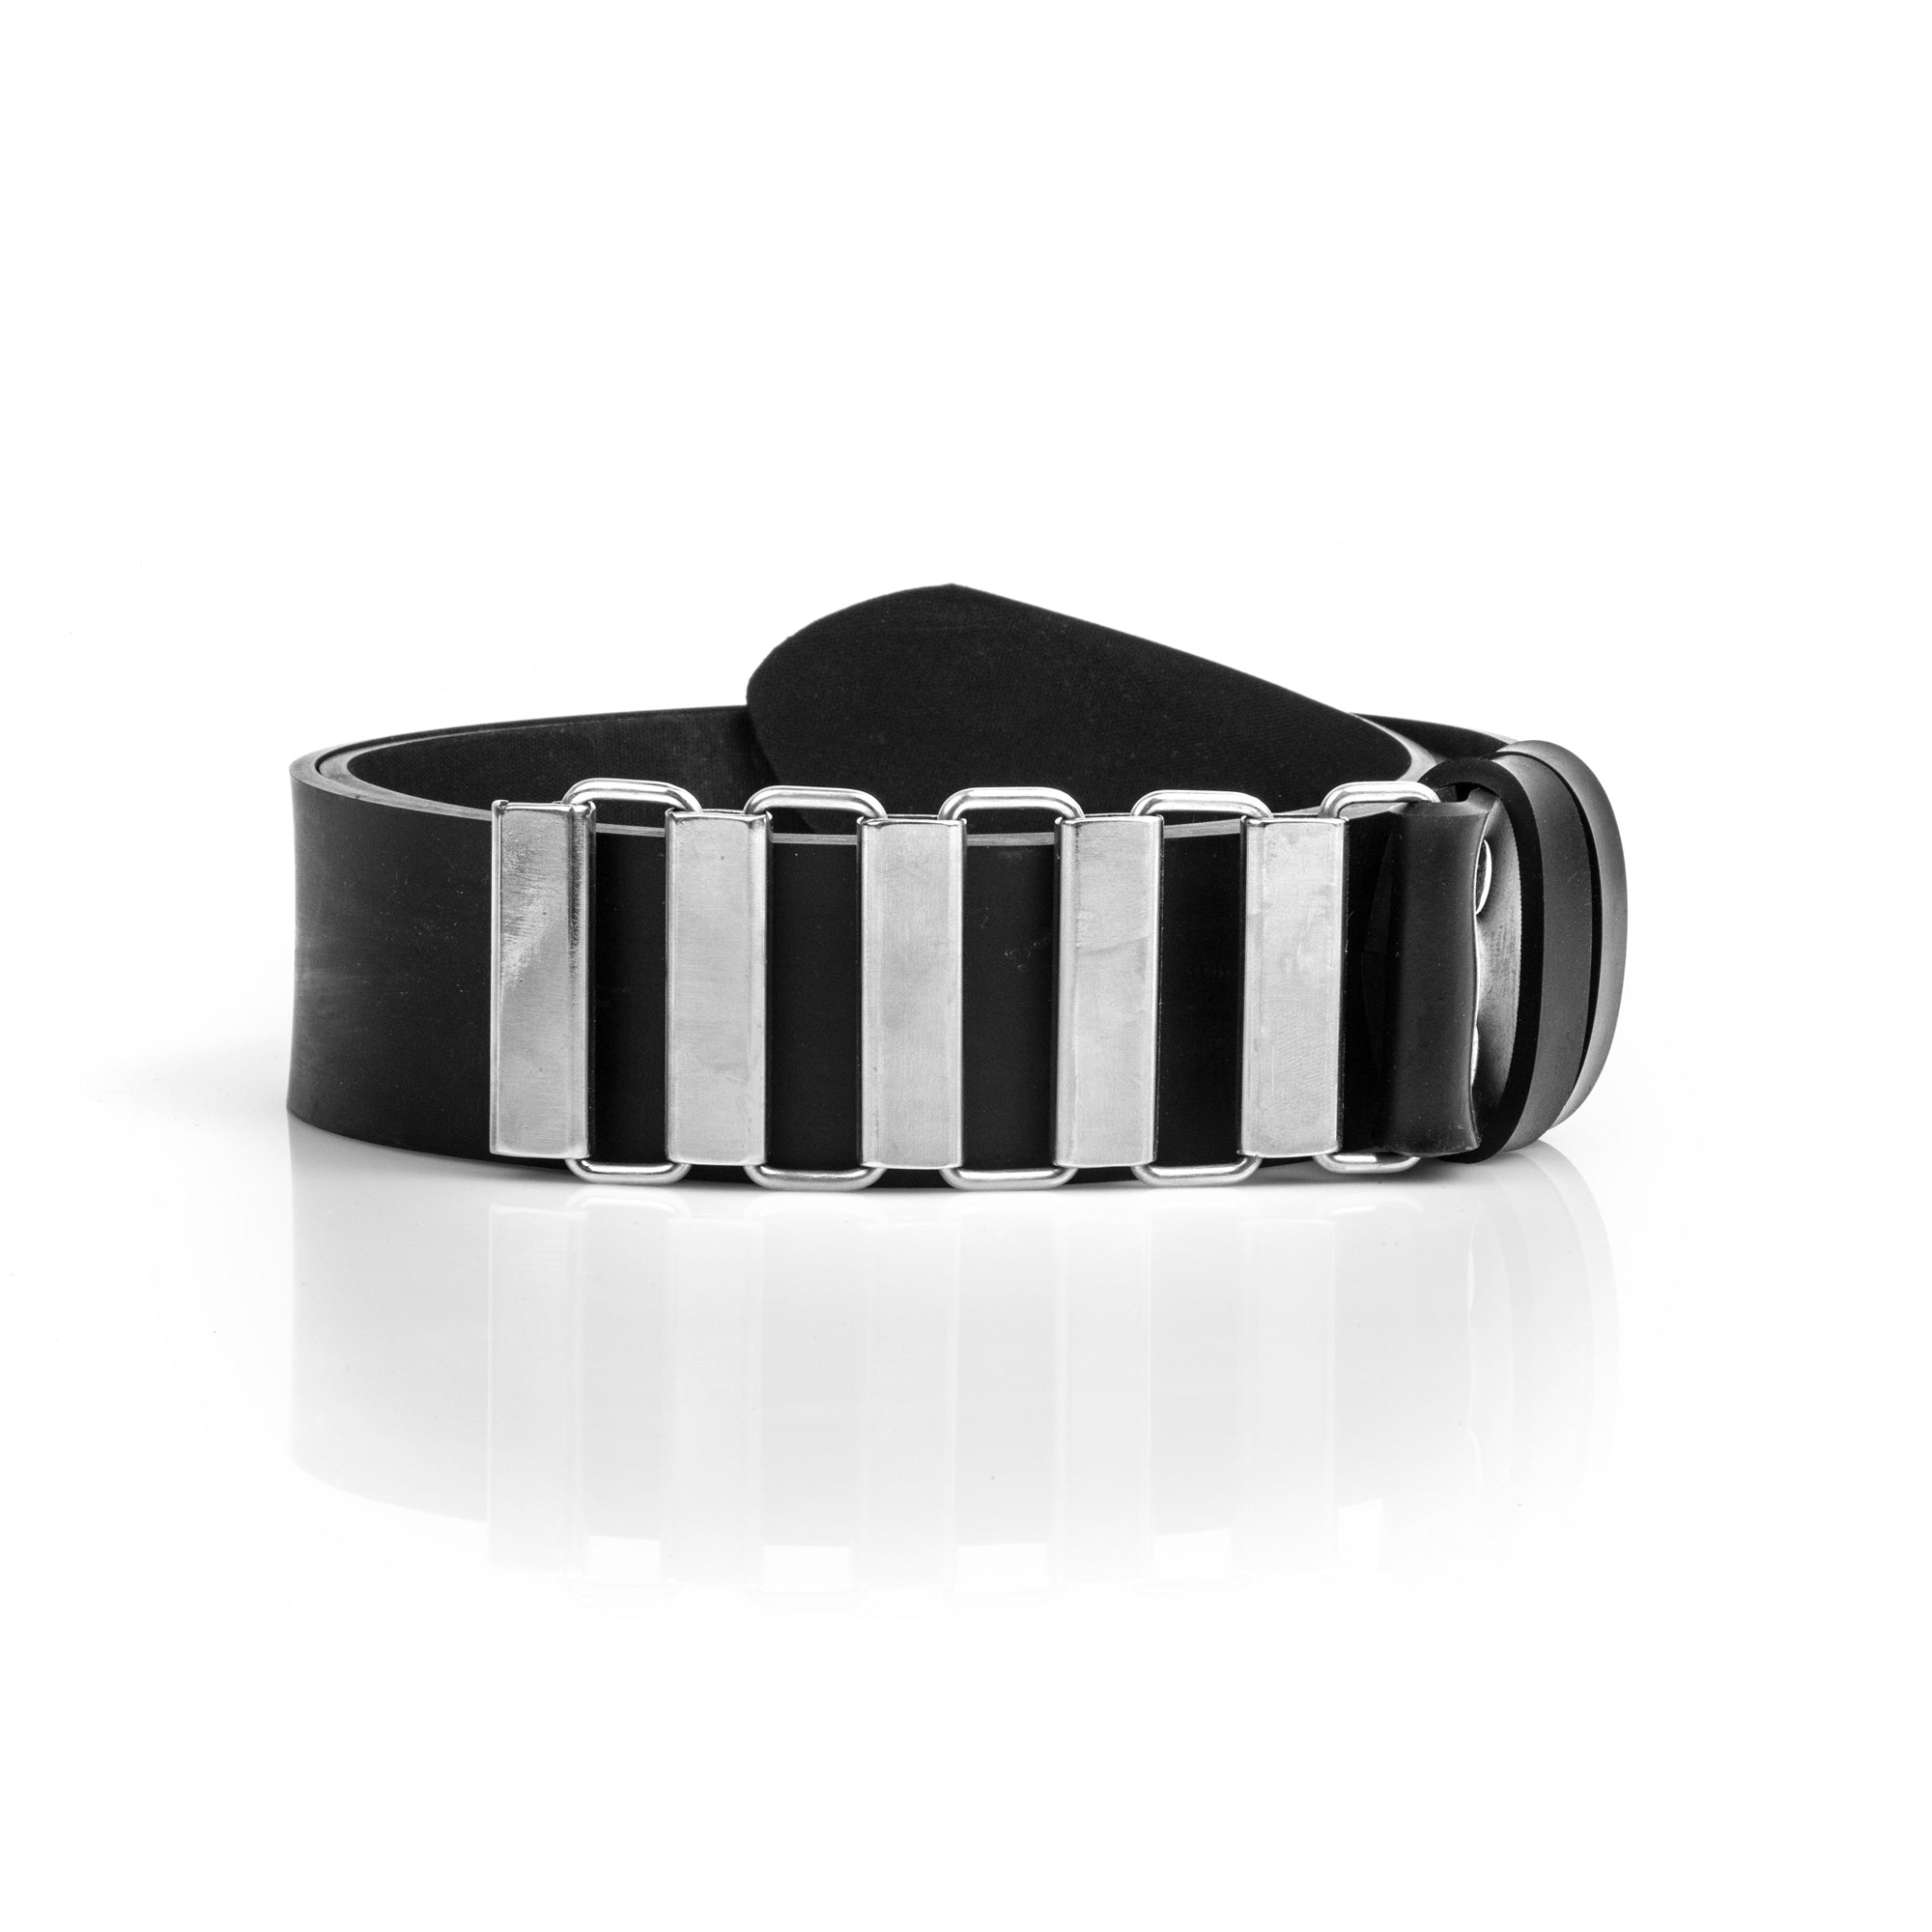 Black Vegan Belt With Stainless Steel Buckle